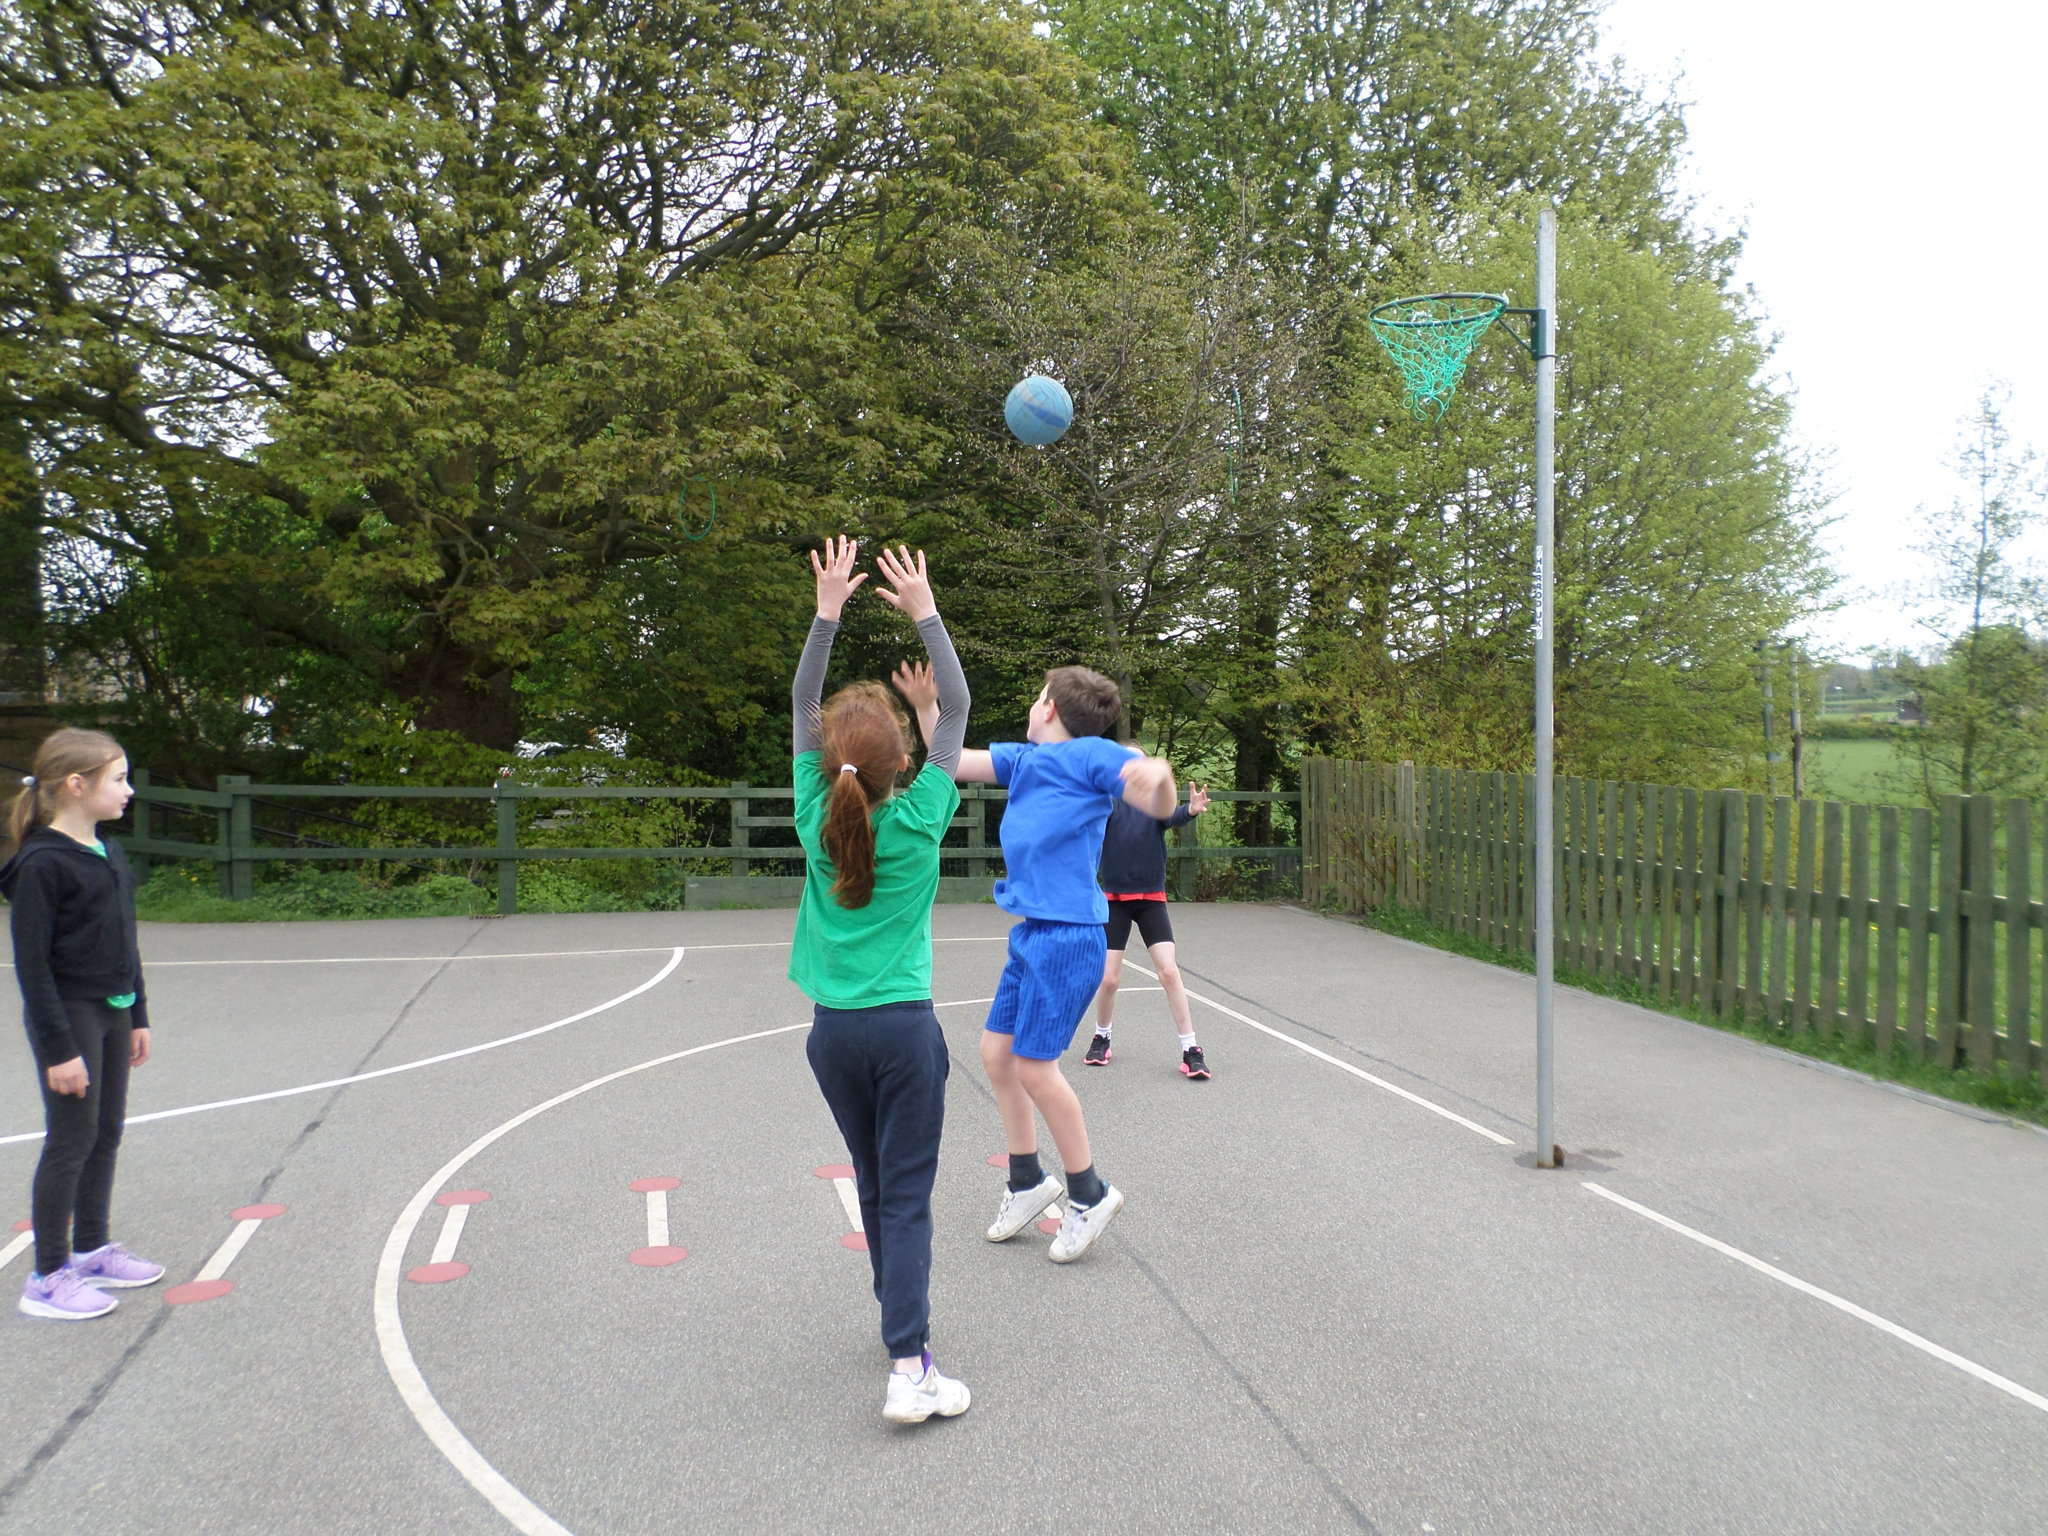 Mr Brotherton Took Class 4 Outside For Their PE Lesson They Were Being Taught How To Pass The Ball Team Mates Manouvre Around Each Other And